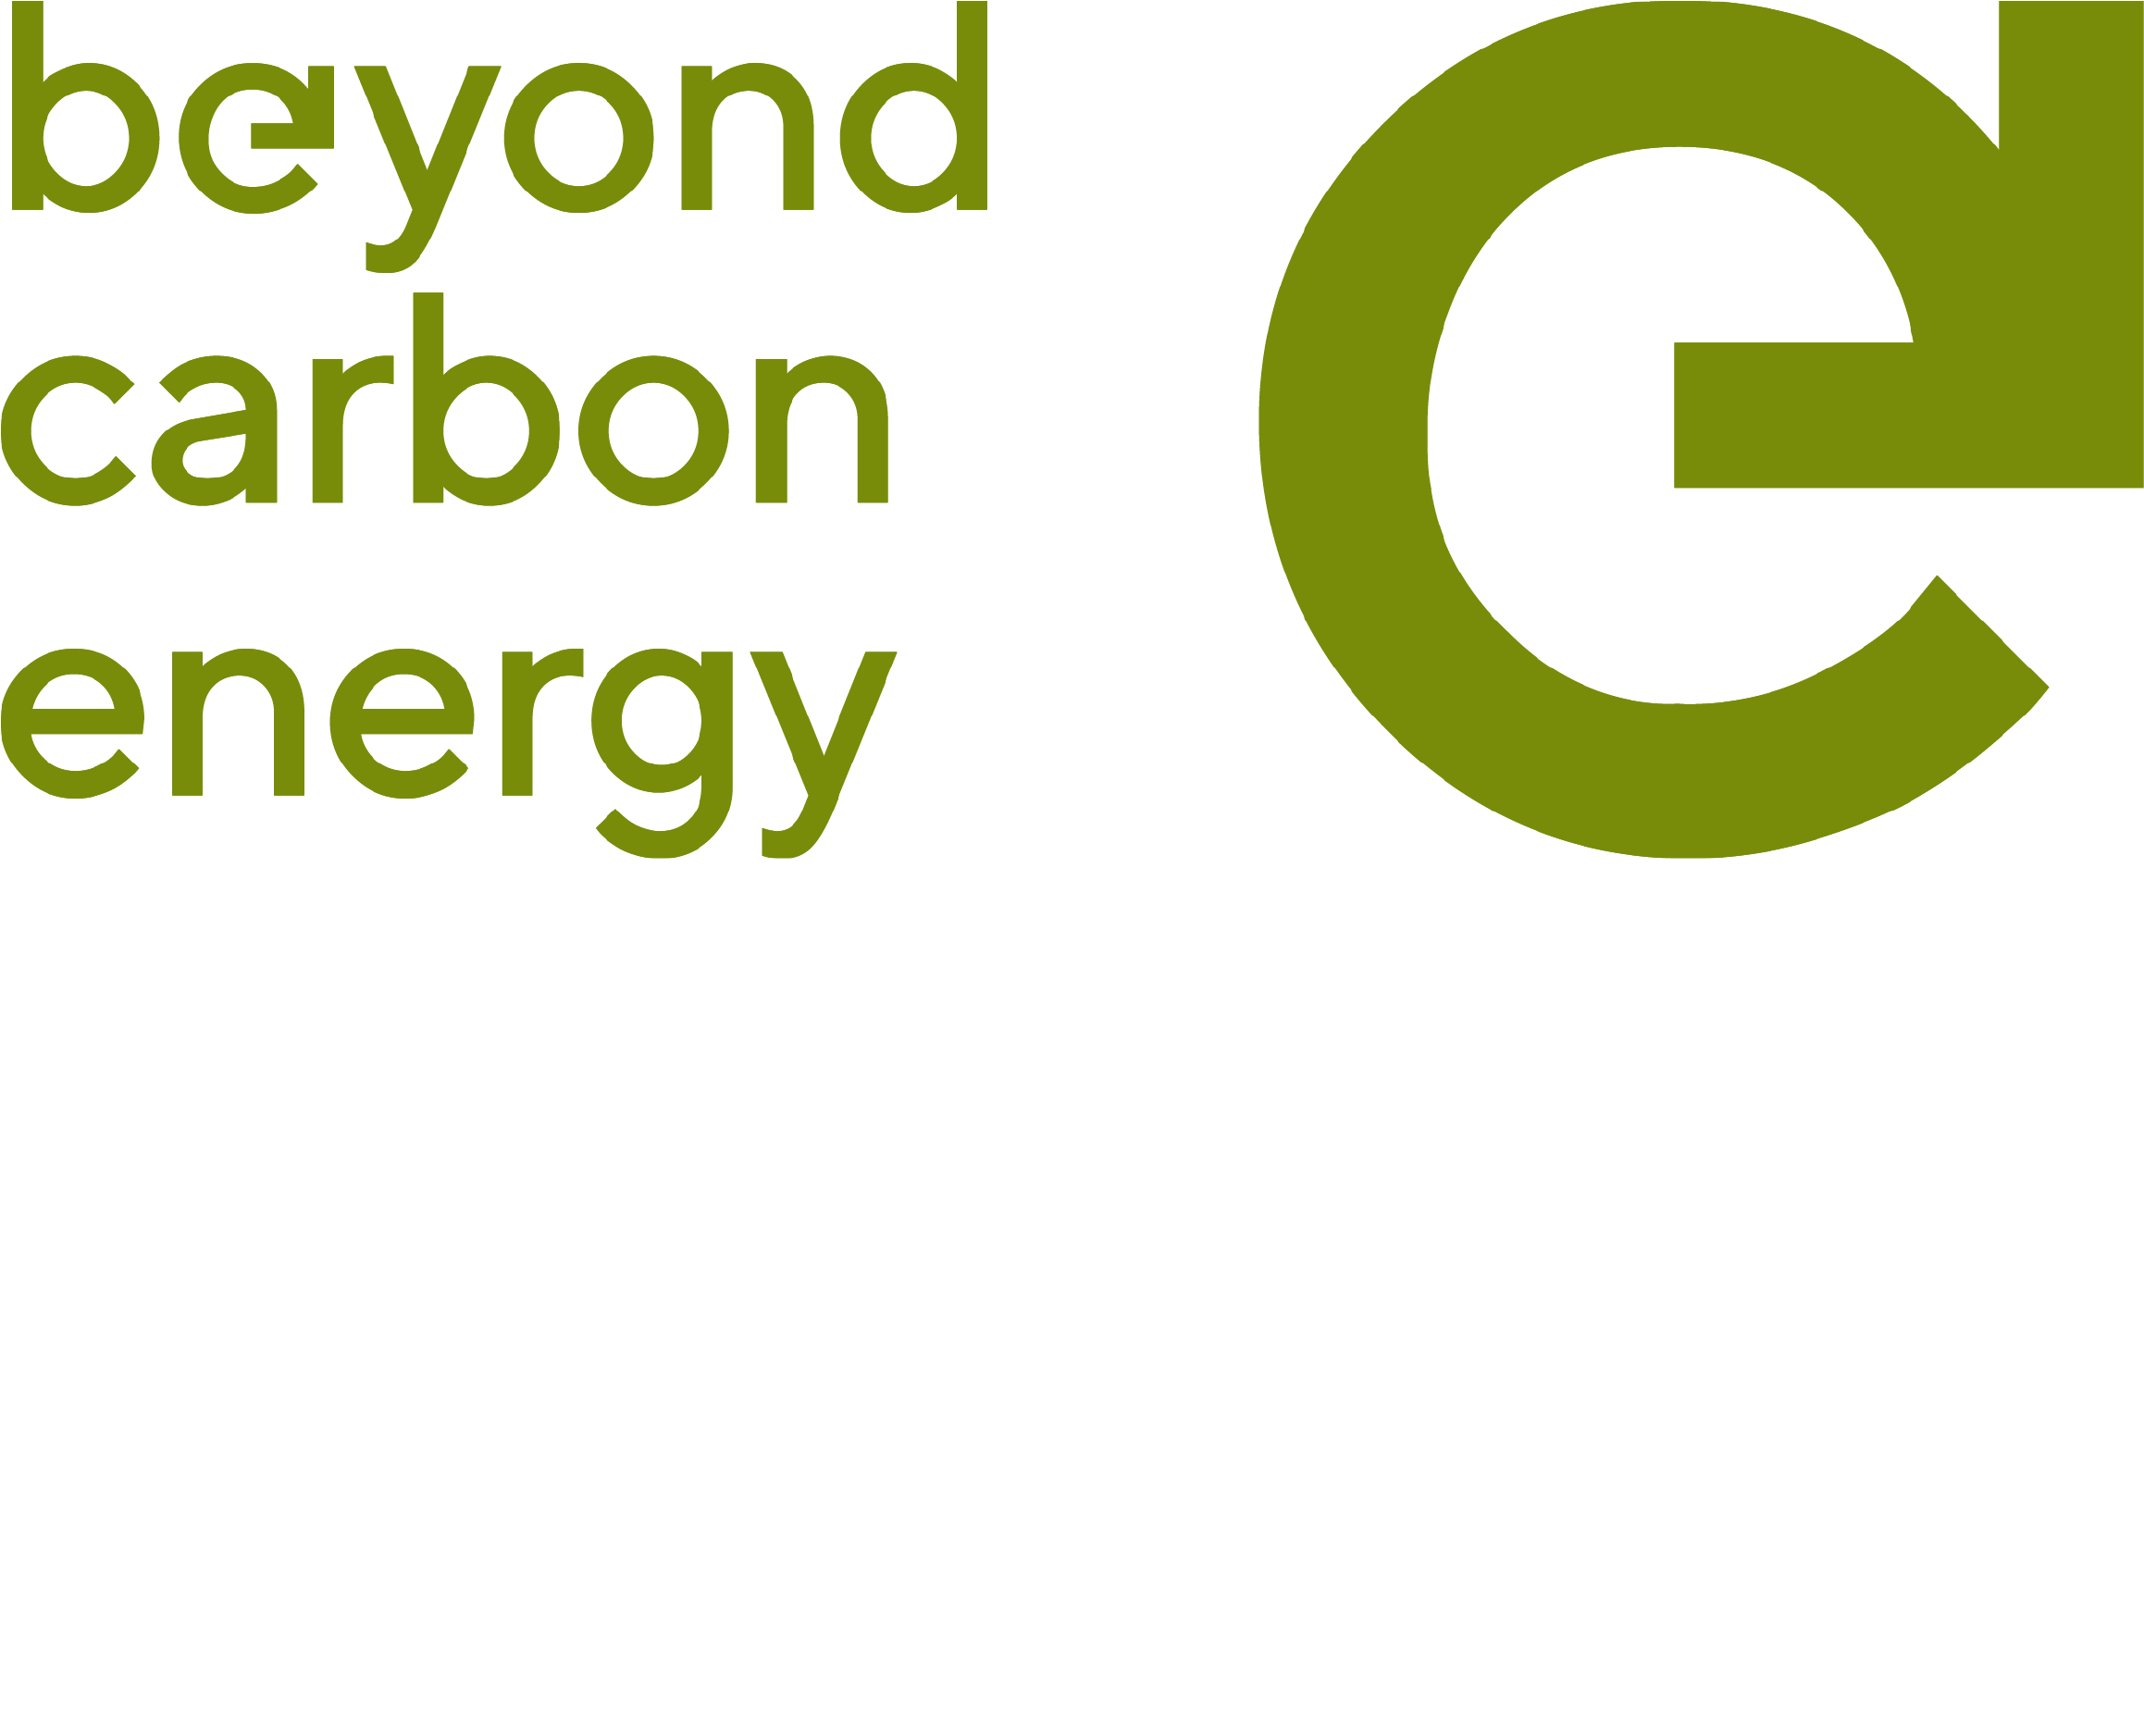 Beyond Carbon Energy